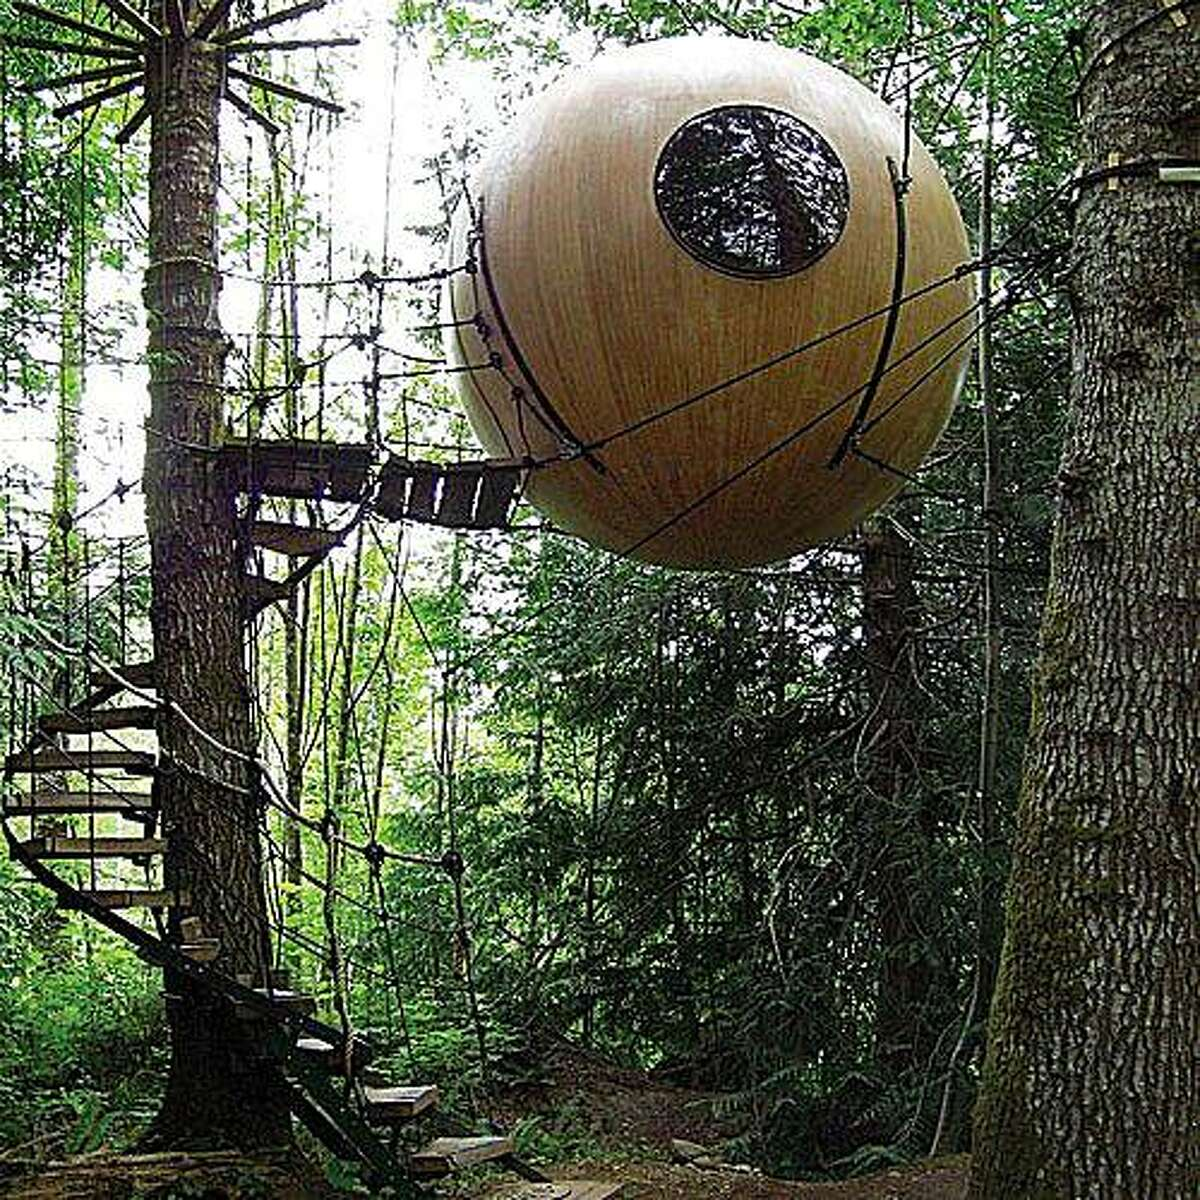 Eryn, above, is one of two spherical treehouses at Free Spirit Spheres.